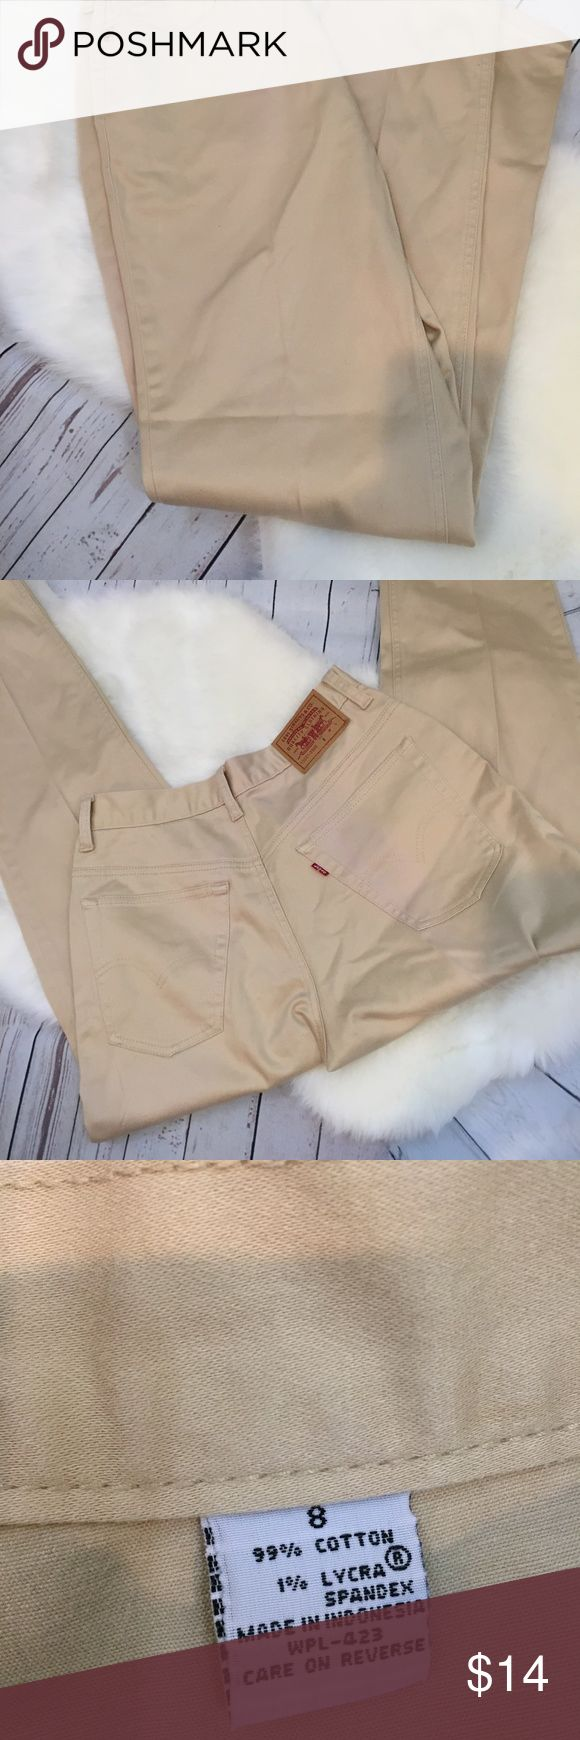 """Levi Strauss & Co Tan 5 Pocket Lightweight Pant Levi Strauss &  Co Tan, 5 Pocket, Slim Leg, Lightweight Pants, Woman's Size 8 Excellent Condition  Made in Indonesia  Material 99% cotton, 1% Lycra  Measurements Length 40 1/2"""" Waist 29 1/2""""  Check out my other listings! **Offers Welcome** ***Bundle = 15% off Please let me know if you have any questions! Sorry, no trades The pants come from a smoke free home Levi Strauss & Co Pants Skinny"""